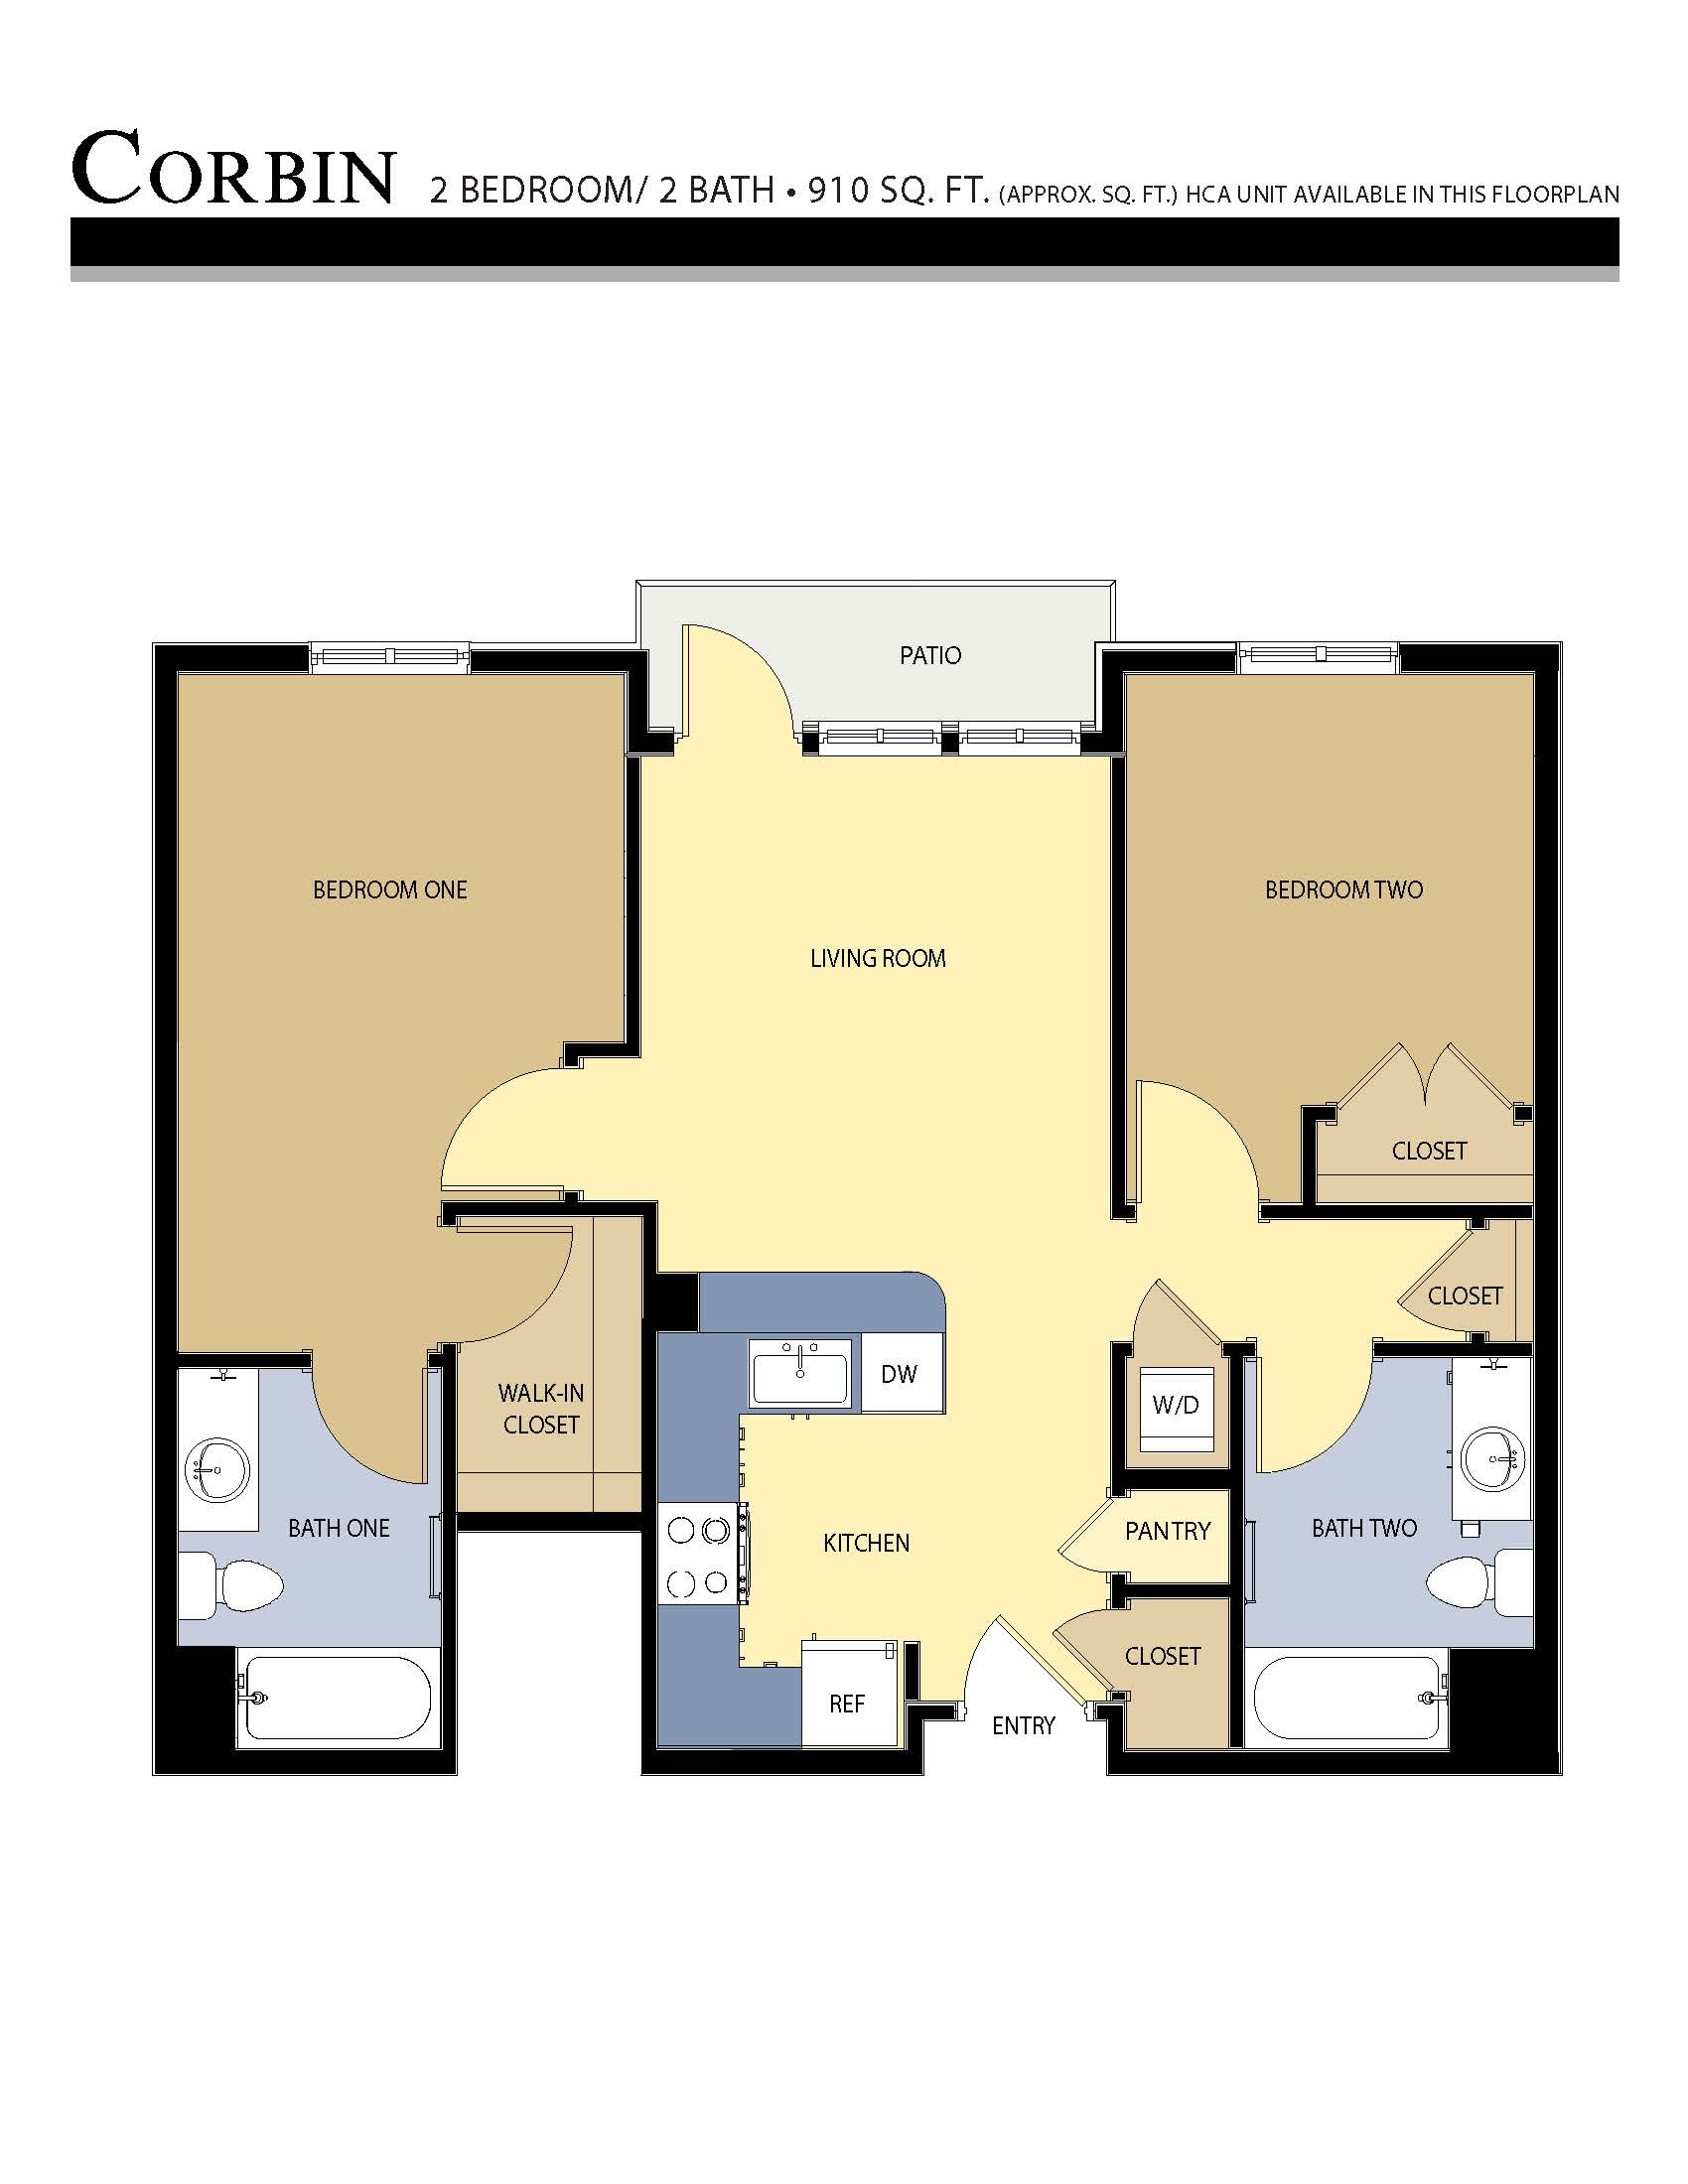 CORBIN floor plan - 2 Bed / 2 Bath (910 Sq Ft)